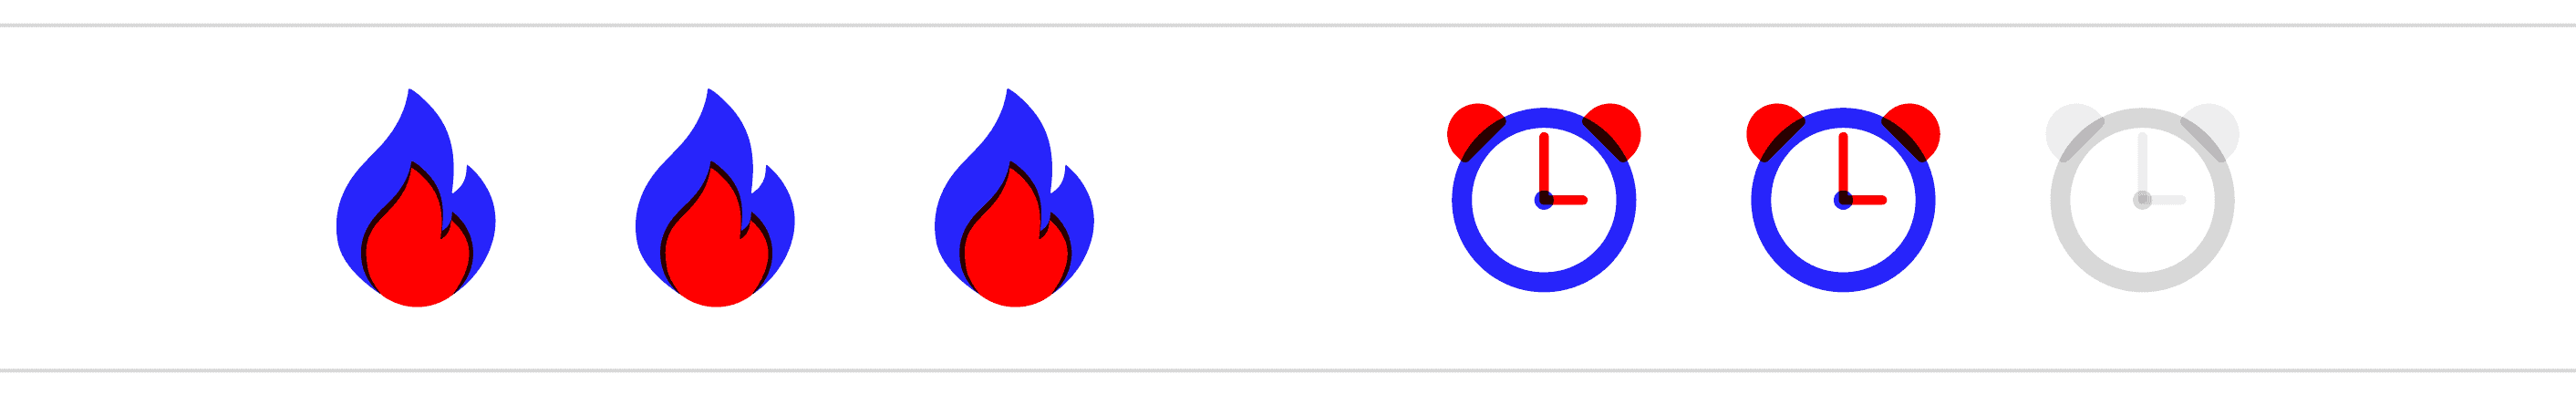 Icons of red and blue flames and clocks, three flames highlighted and two clocks highlighted